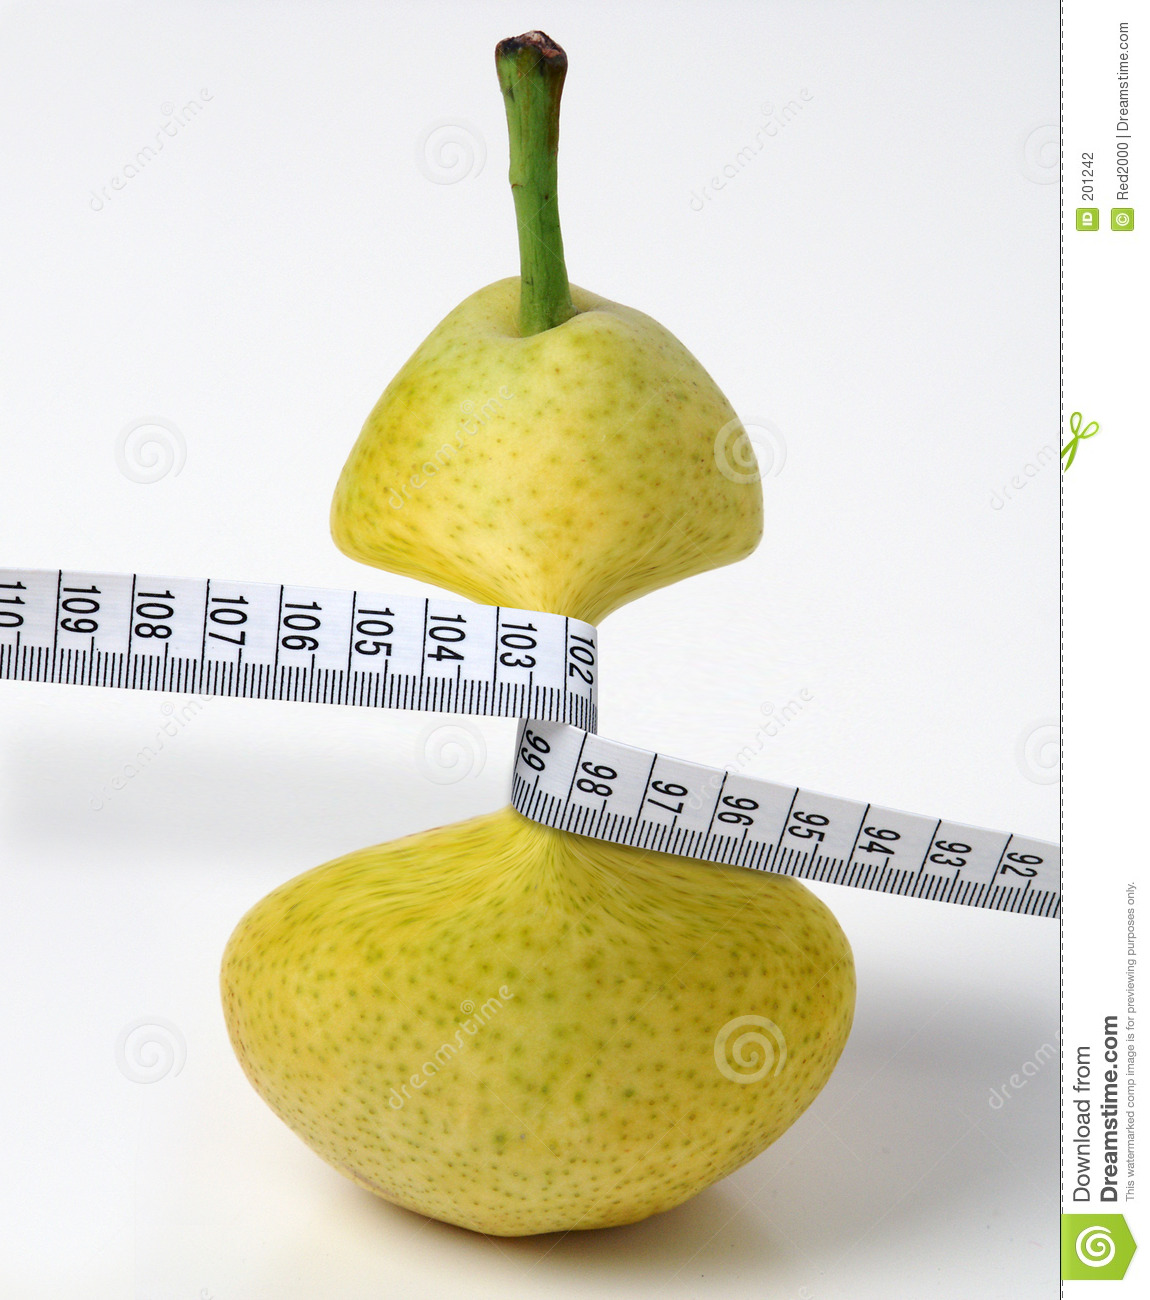 Anorectic Pear